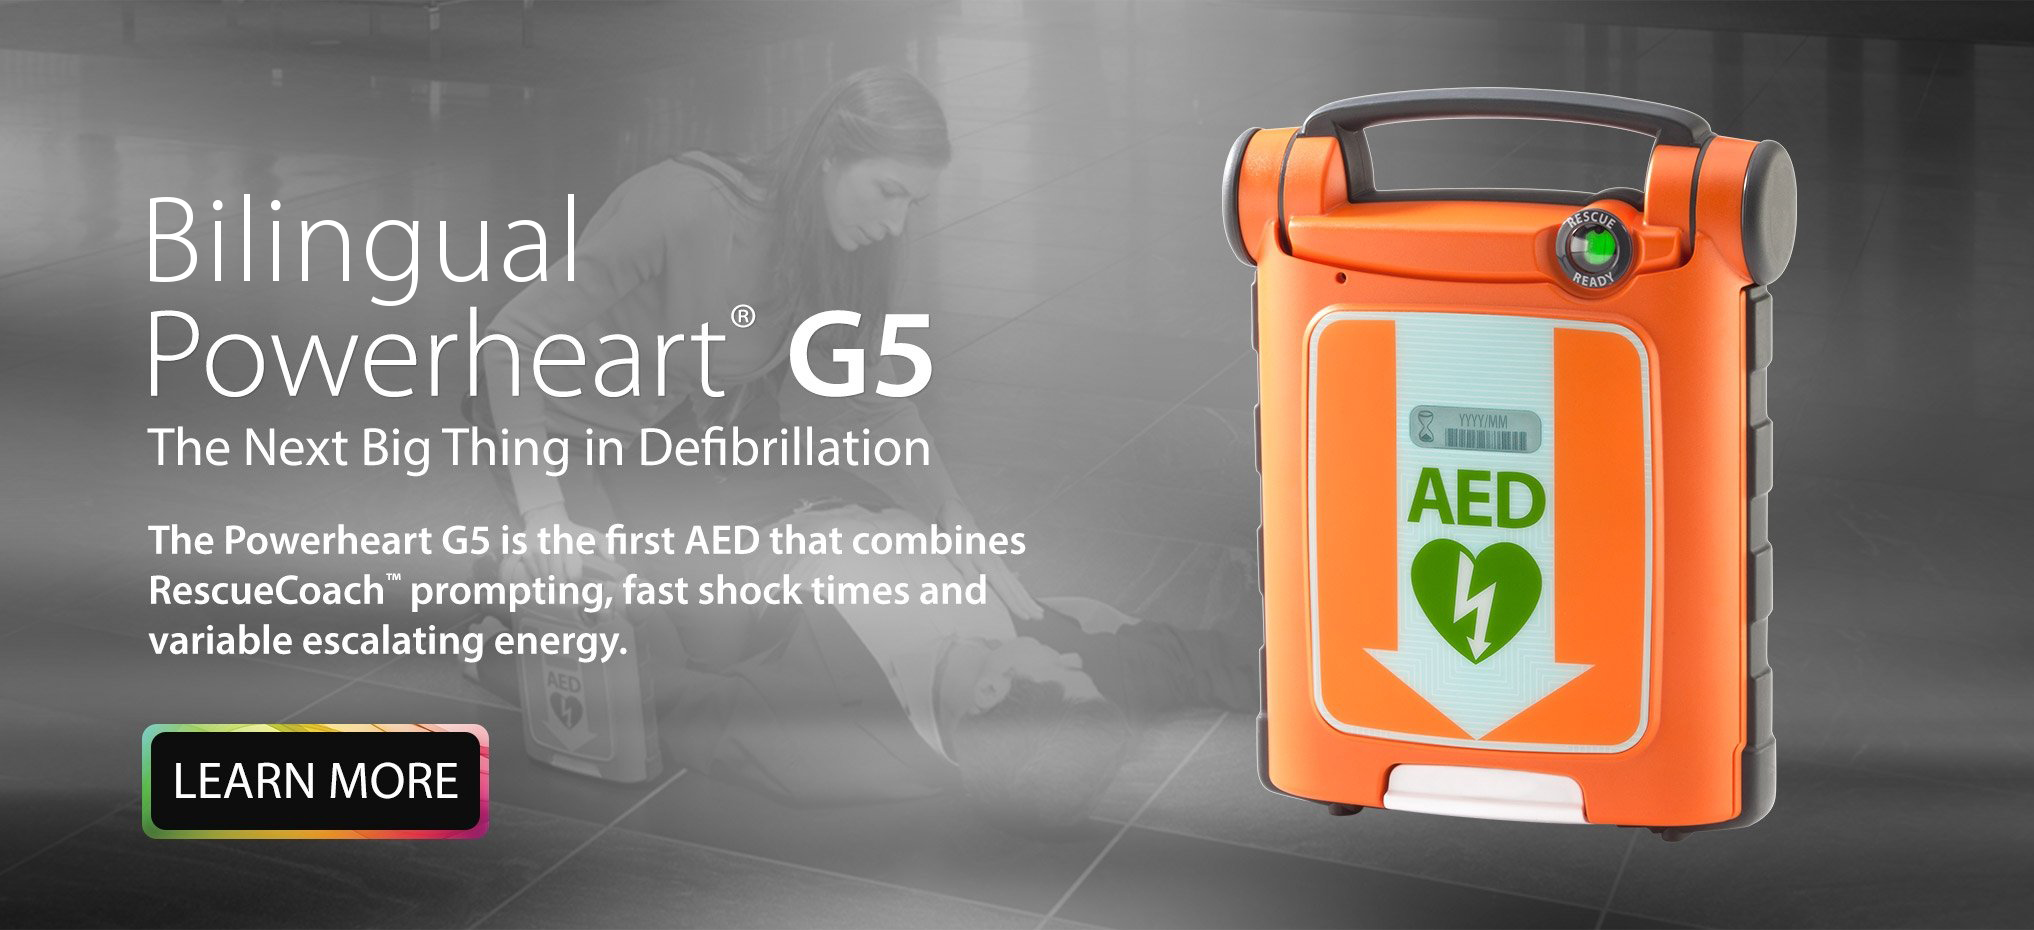 G5-automated-external-defibrillators